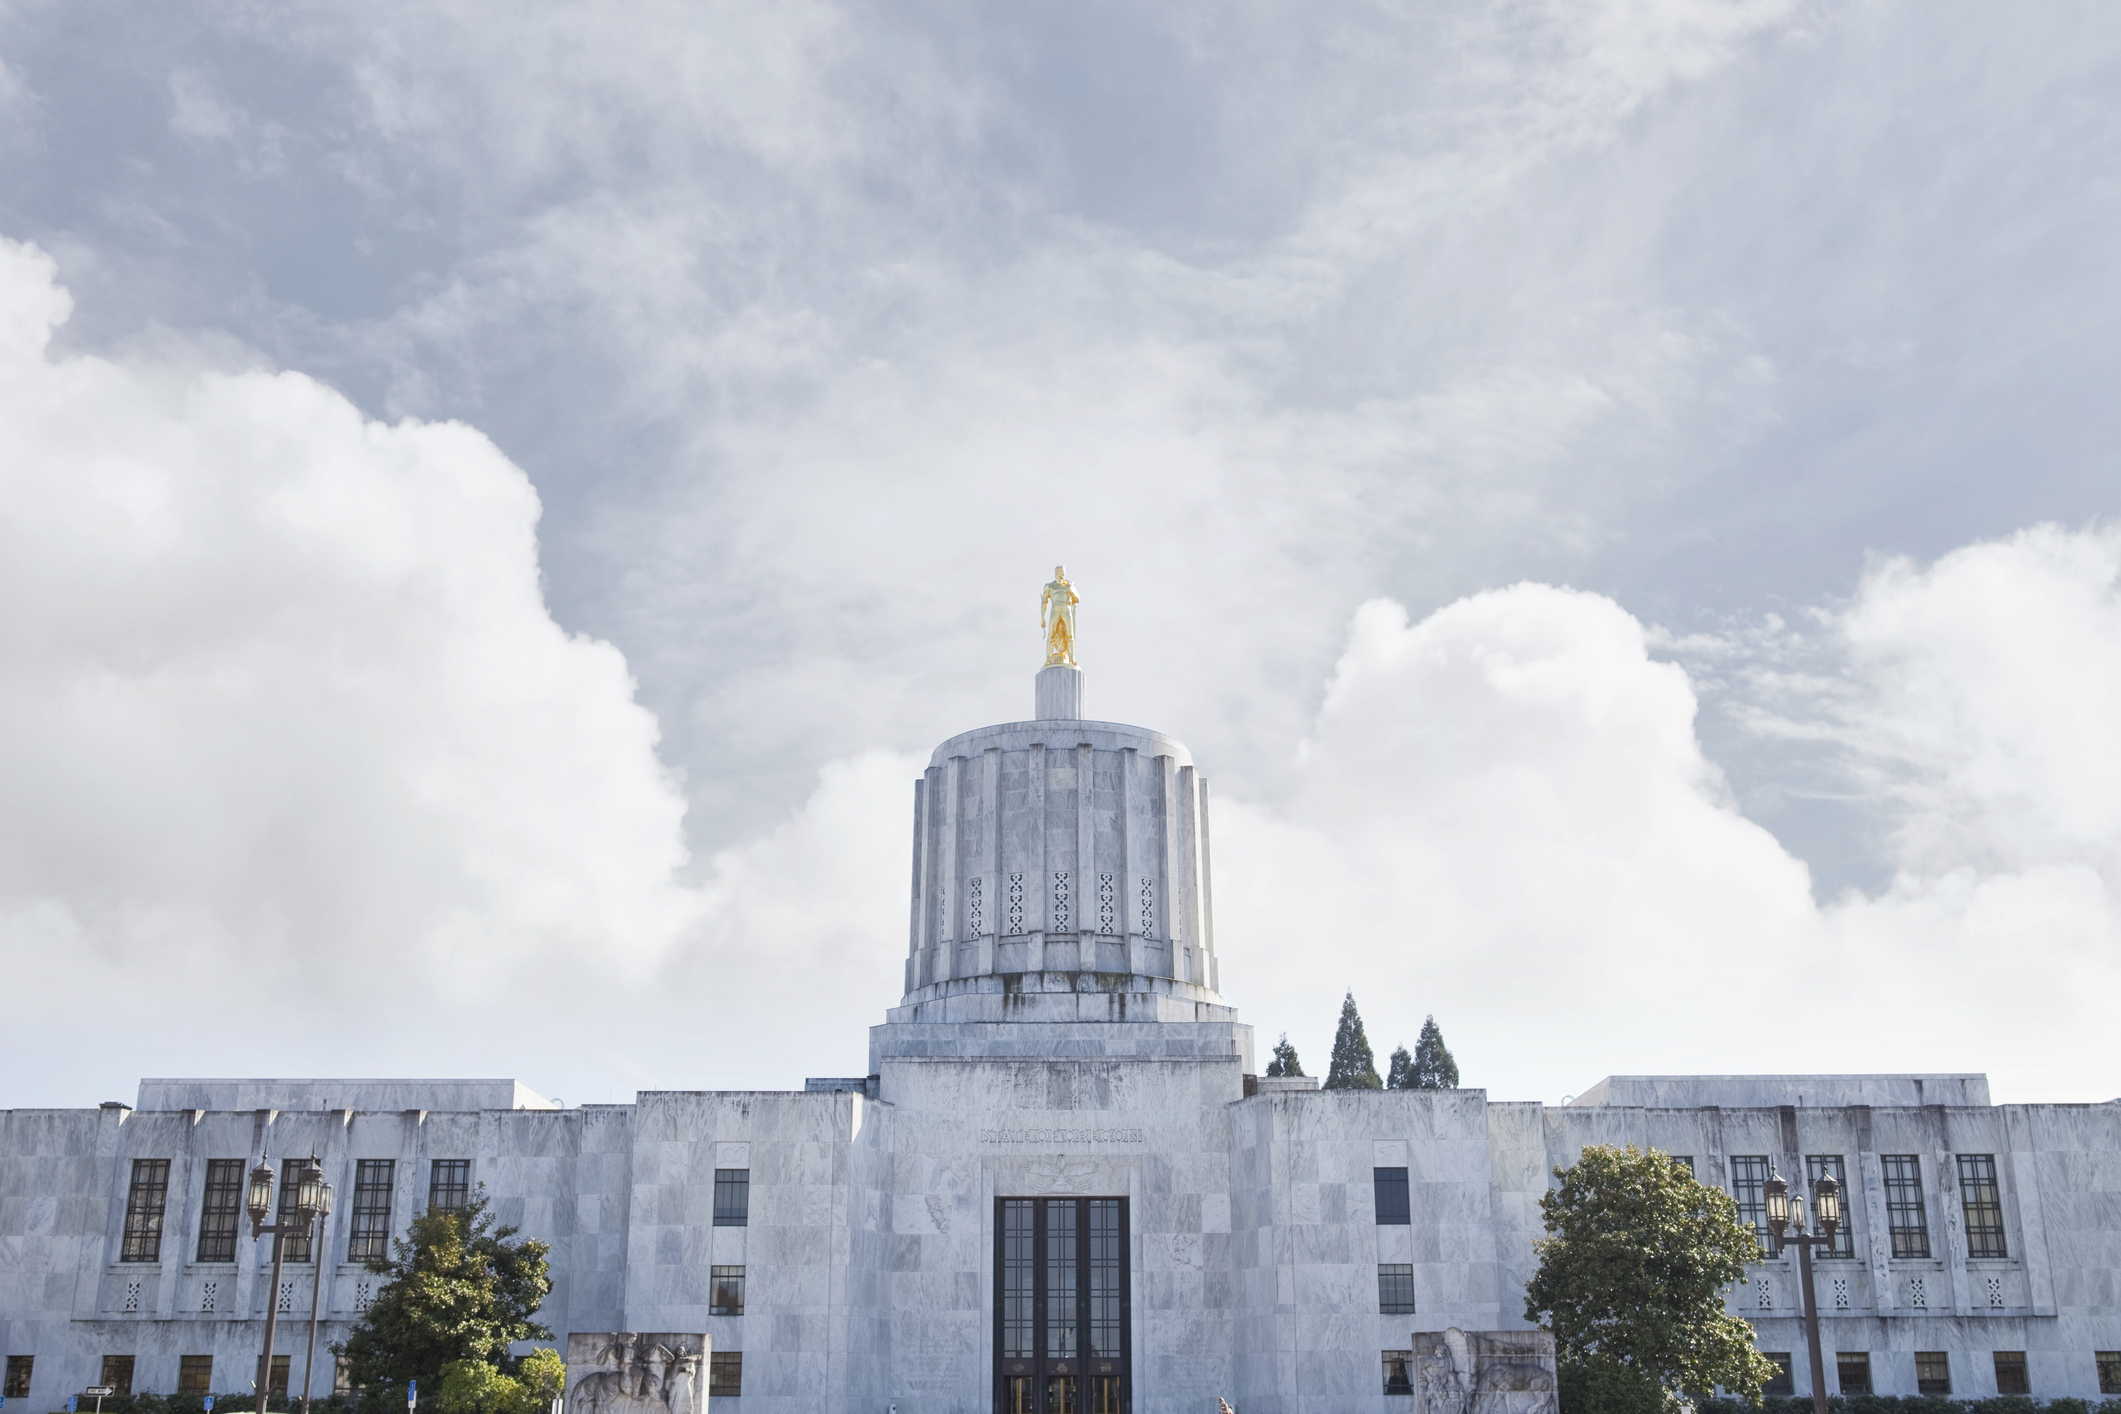 Oregon State Capitol Building in Salem, Oregon.